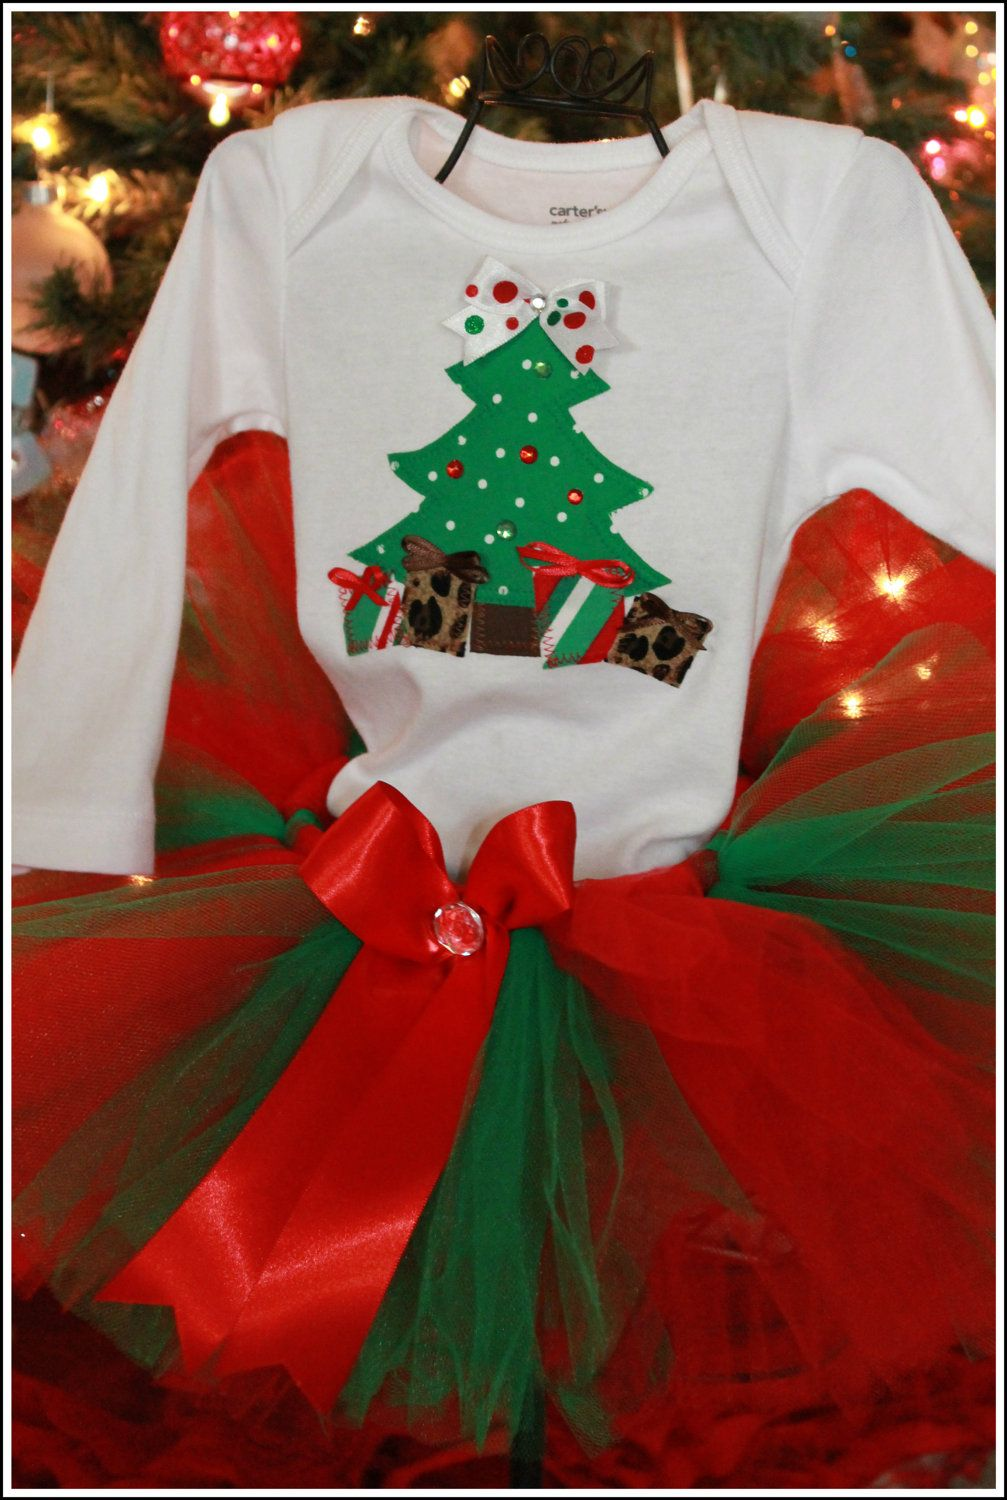 Christmas Outfits For Girls Christmas Outfits Christmas Outfits Outfits Christmas Christmas Tree Christmas Tree Shirt Christmas Outfit Girls Christmas Outfits